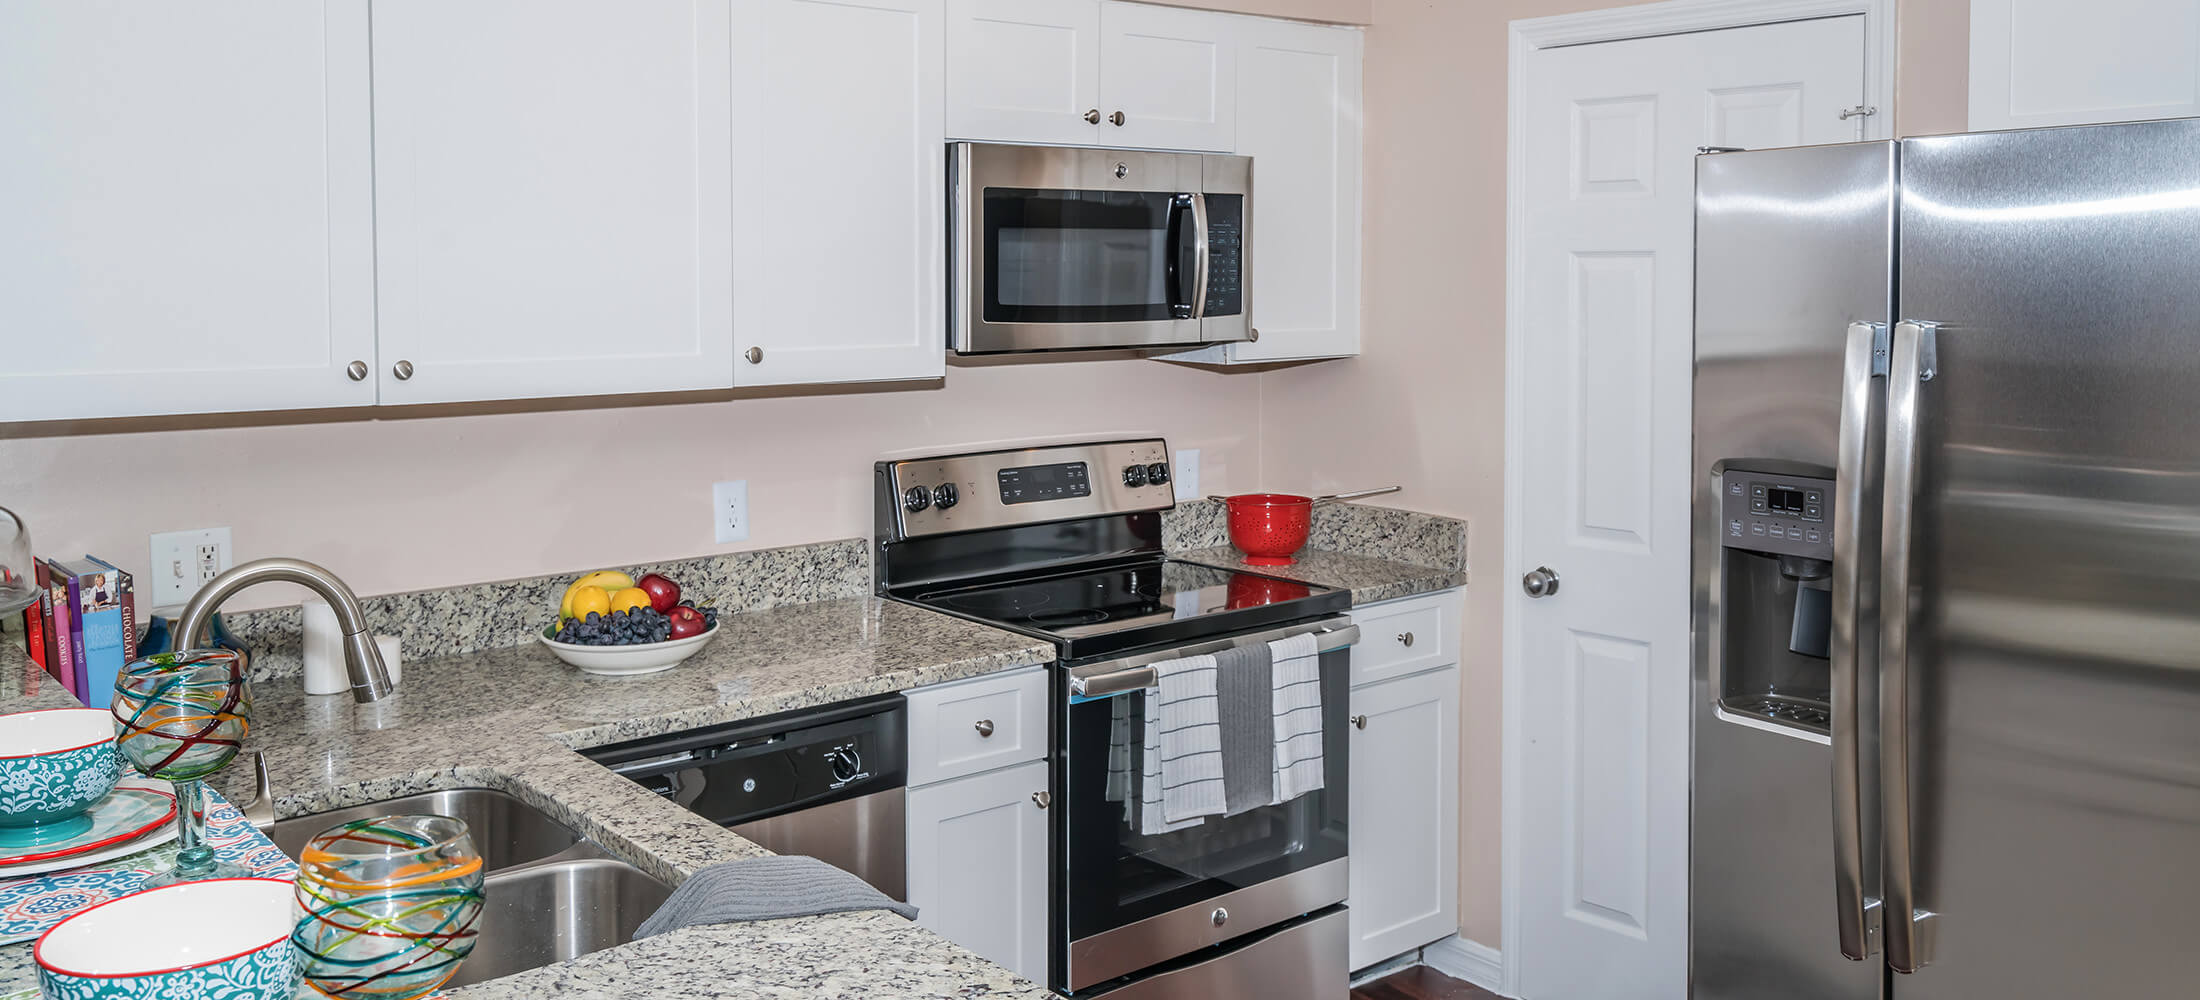 essex place luxury apartments apartments in tampa fl slideshow image 3